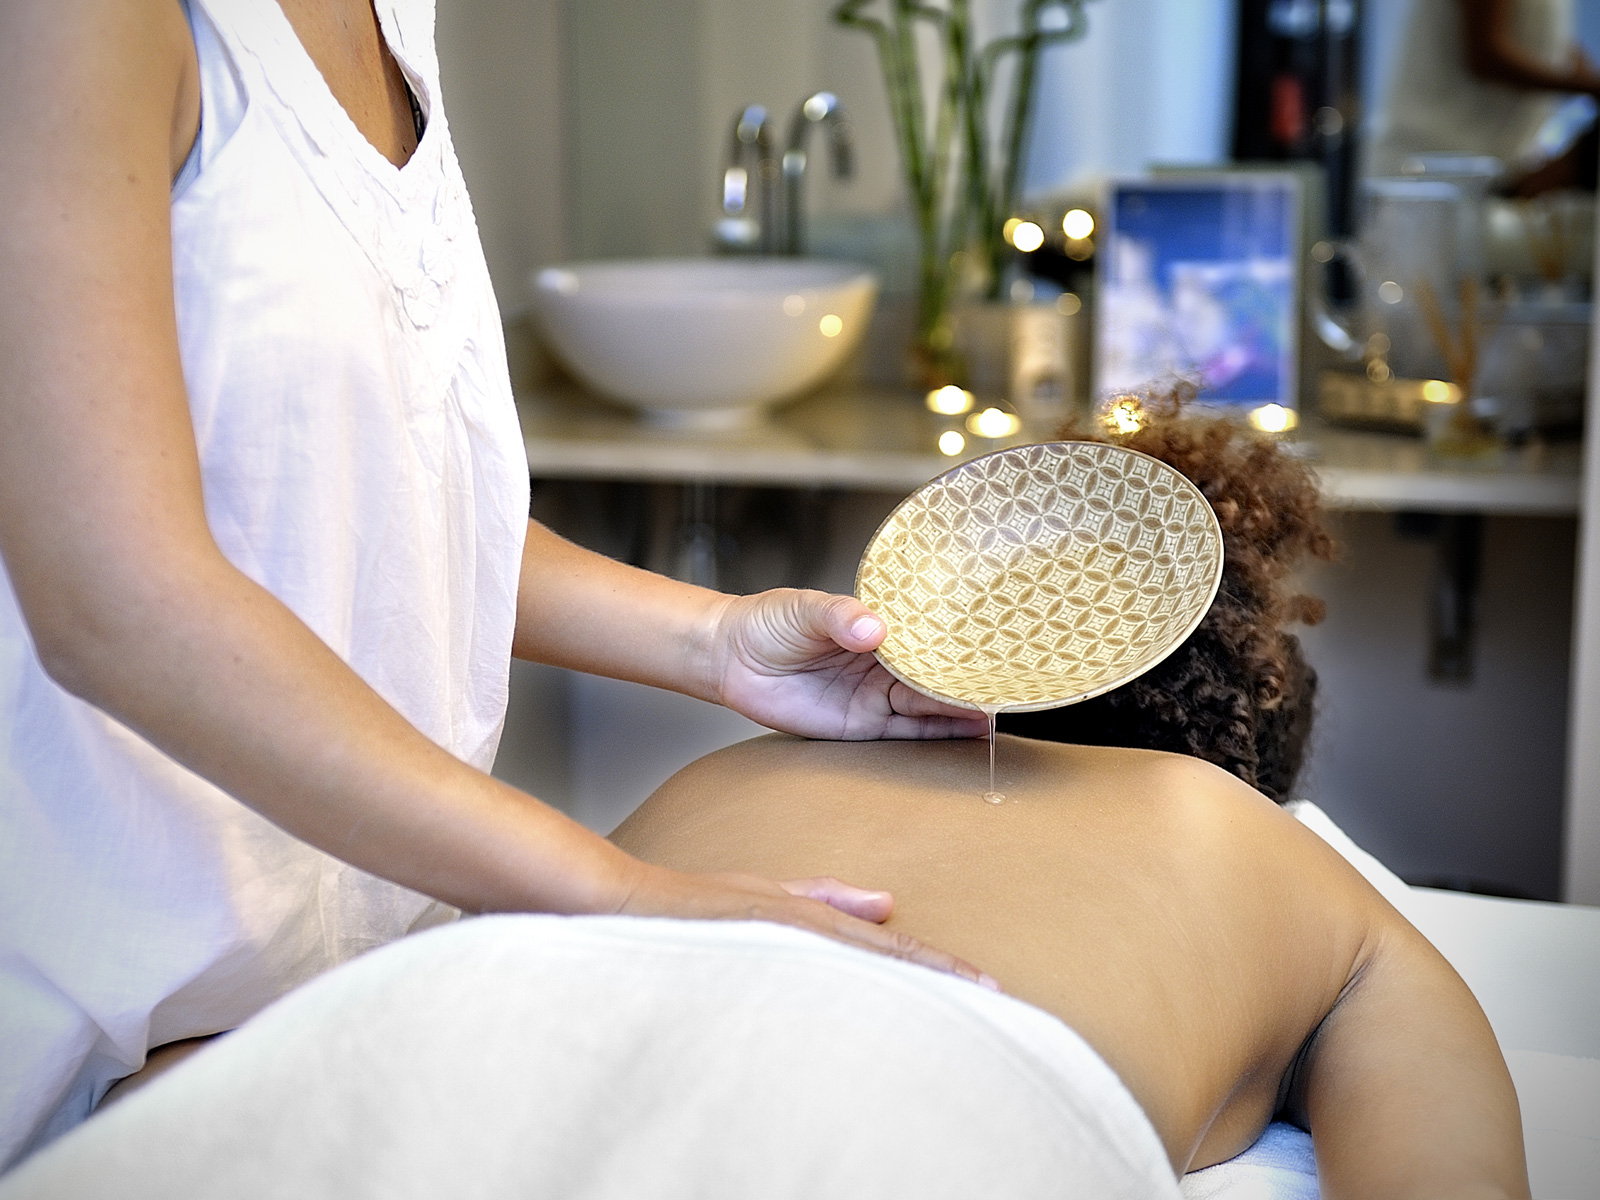 A Well-Being Getaway | Promotions Hotel Vincci Aleysa Boutique&Spa